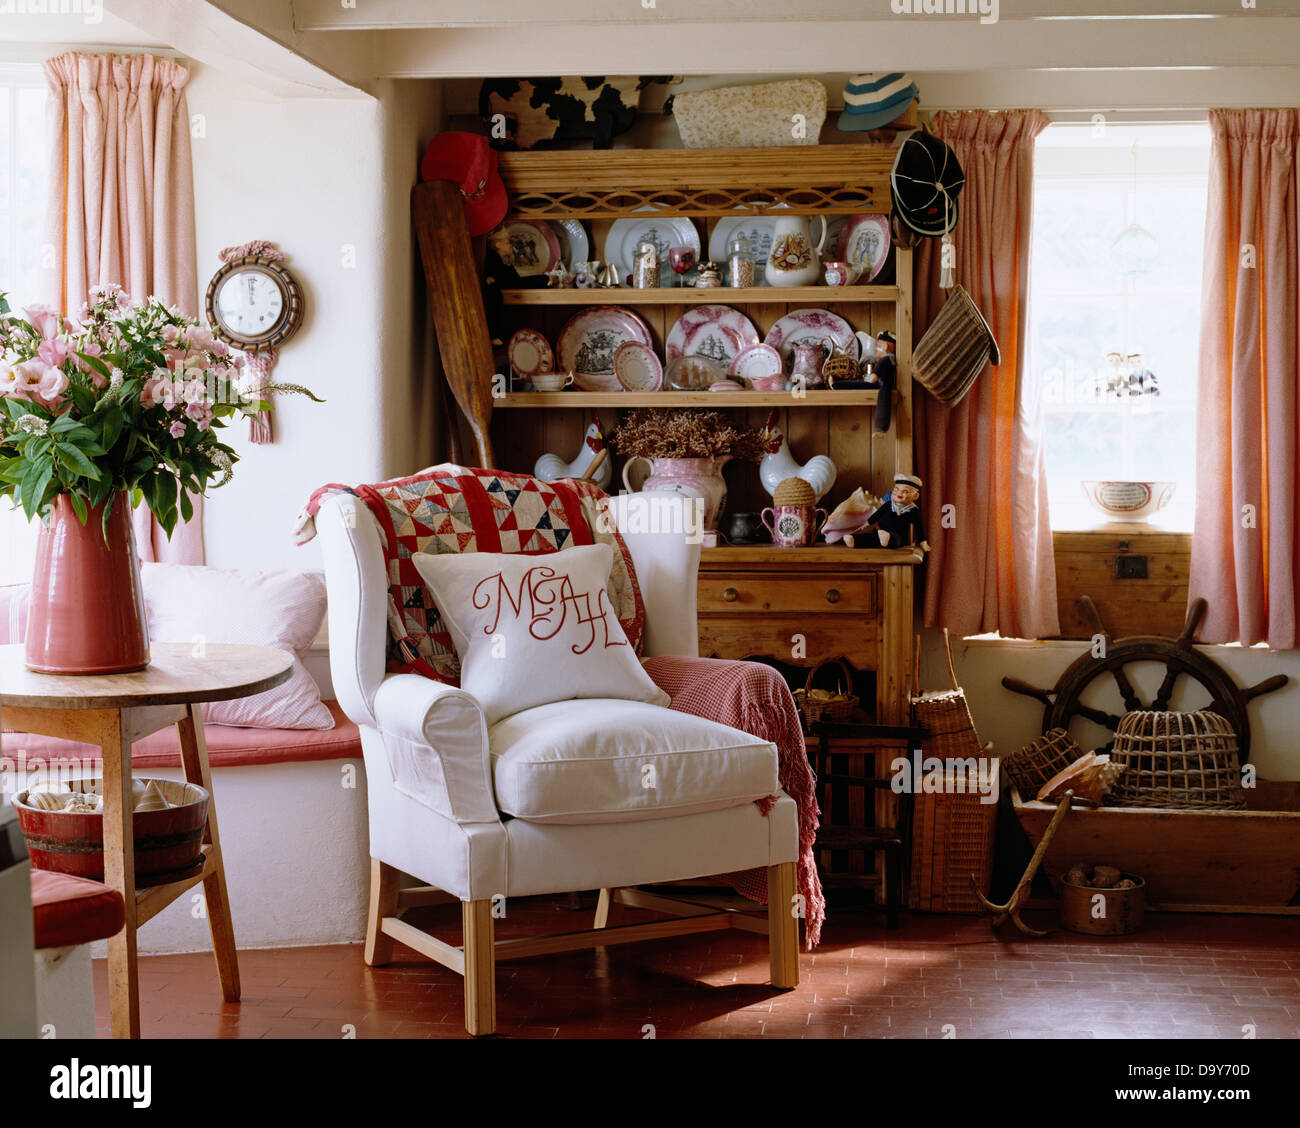 Monogrammed White Linen Cushion On Upholstered Armchair In Cottage Living Room With Display Of Pottery Pine Dresser